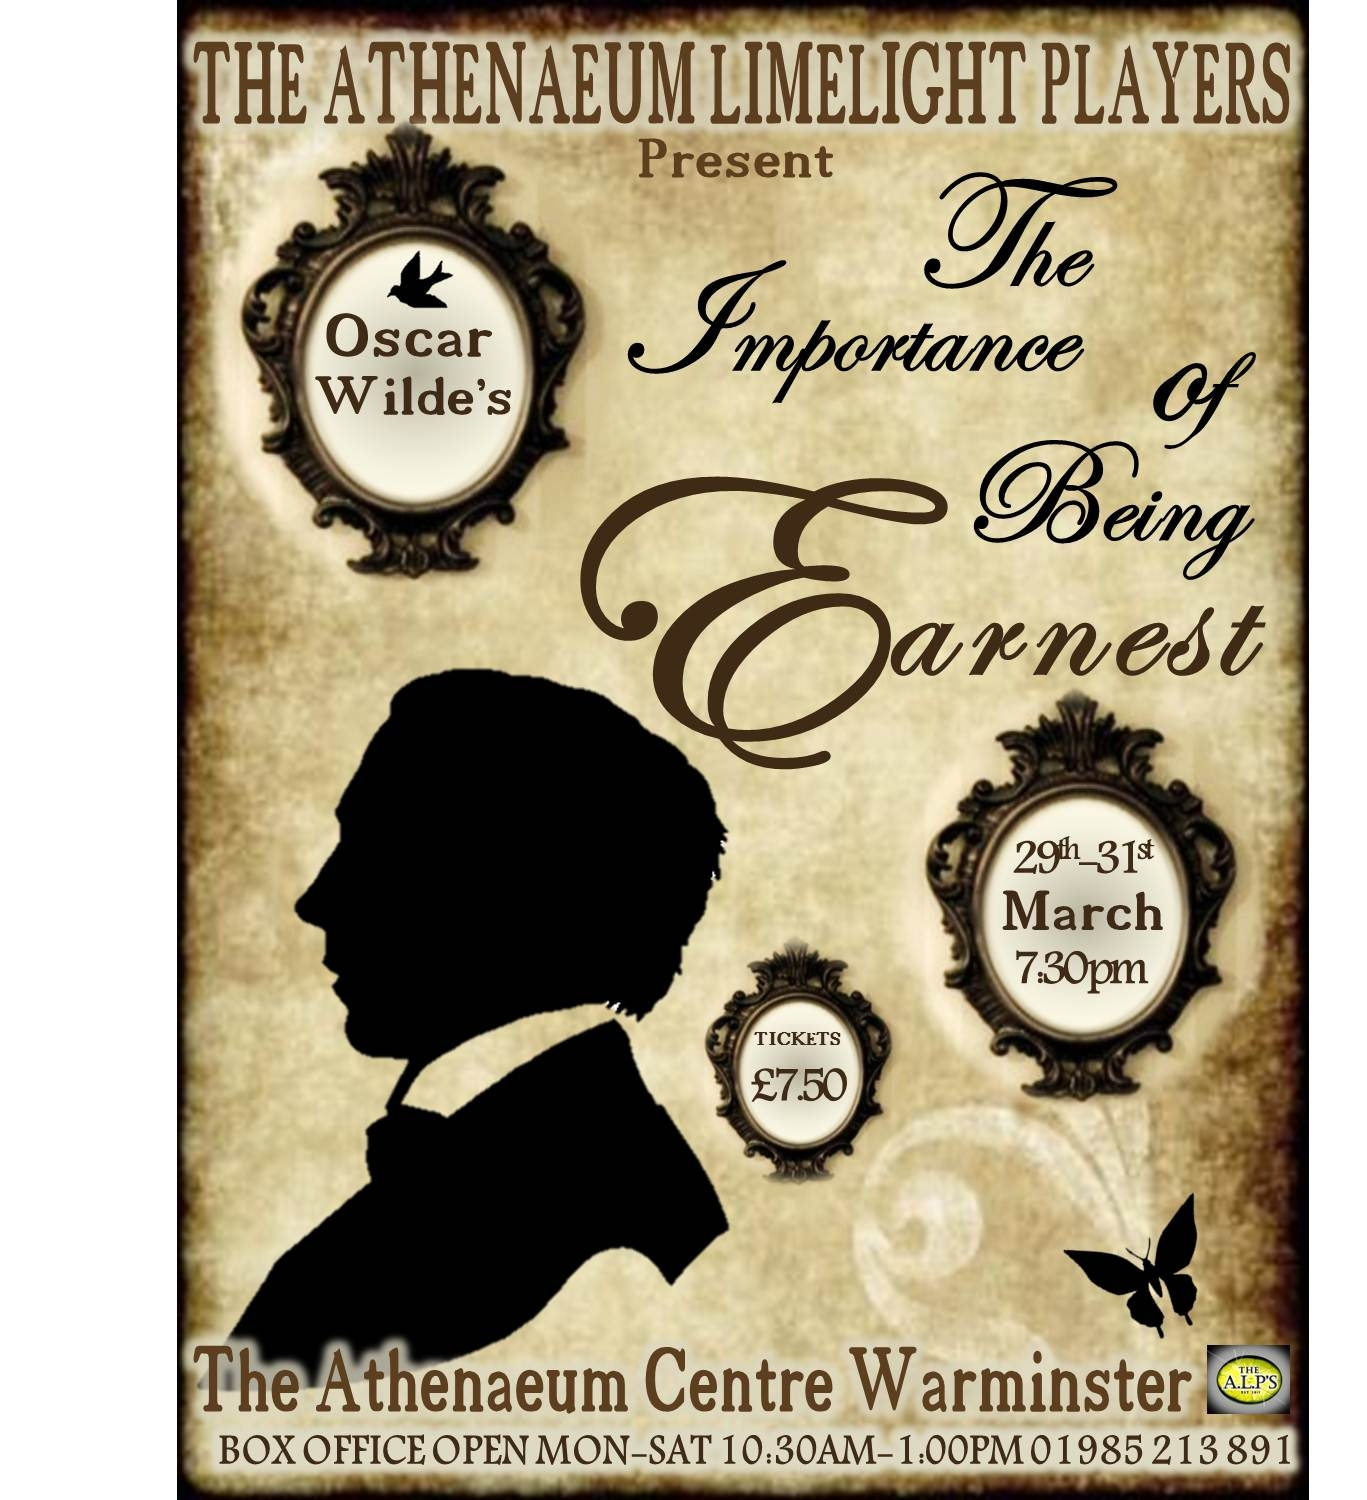 an analysis of the importance of being earnest a play by oscar wilde Play summary about the importance of being earnest wilde seems to be saying that in victorian society people seem unaware of the difference between trivial subjects the deliberate use of the name ernest is calculated earnestness, or devotion to virtue and duty, was a victorian ideal.